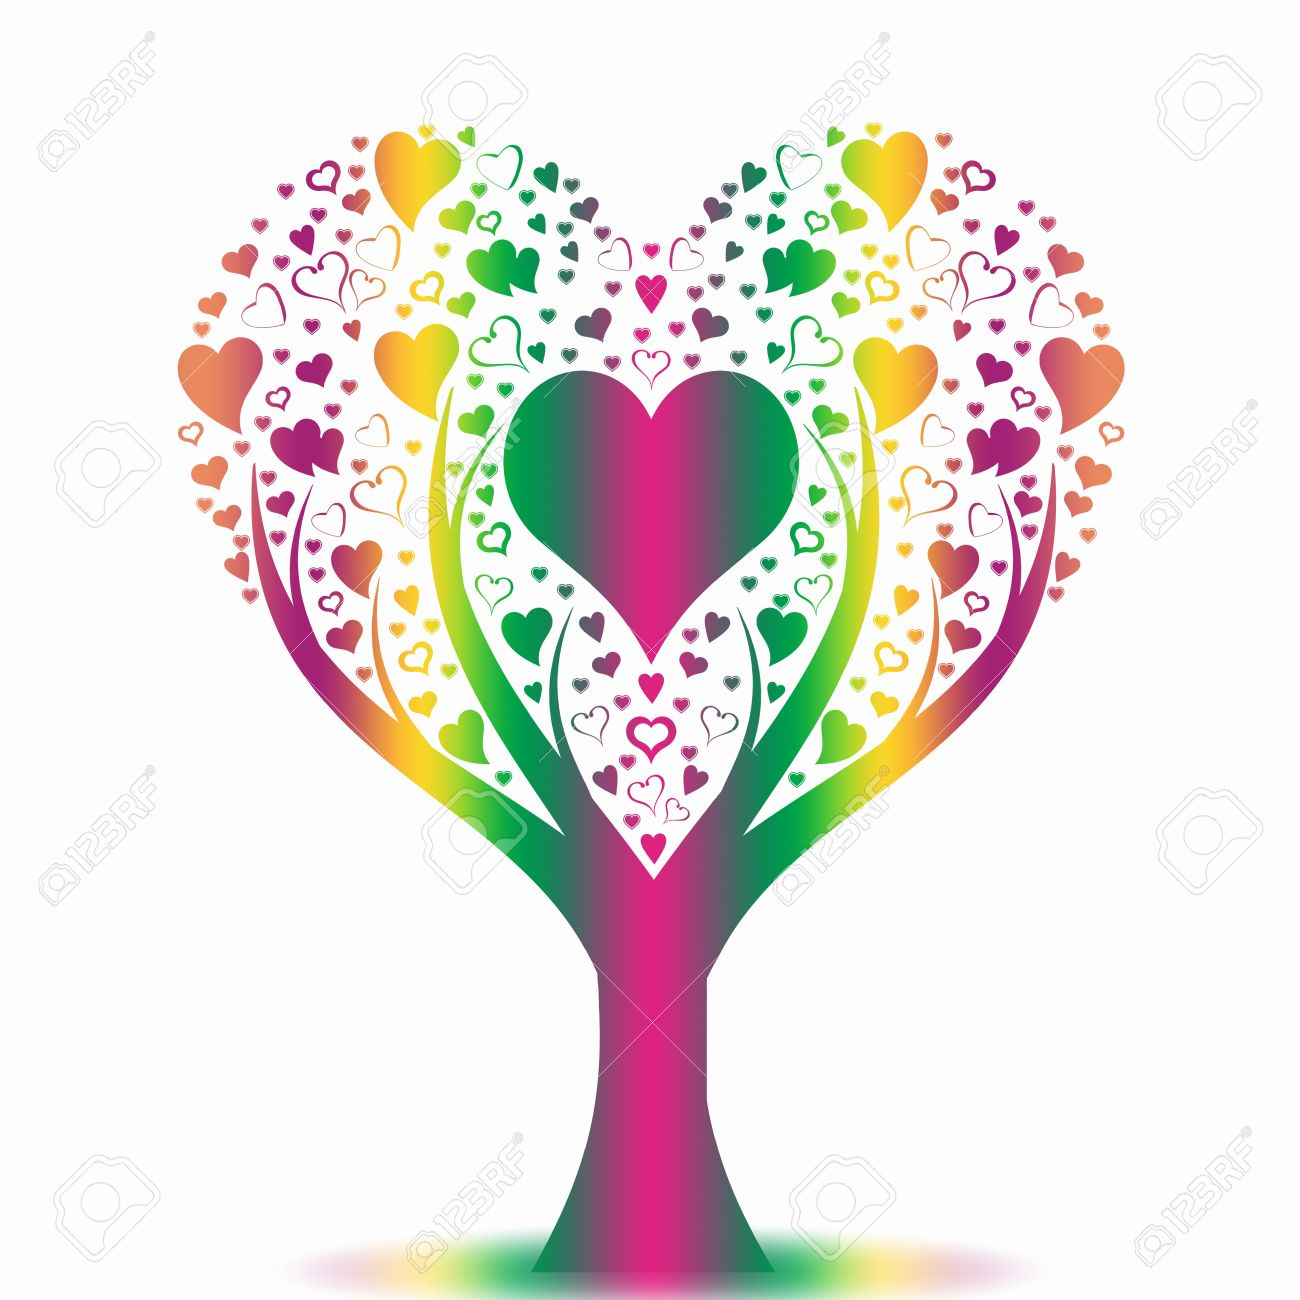 colorful art tree on white background stock vector 10025860 - Colorful Art